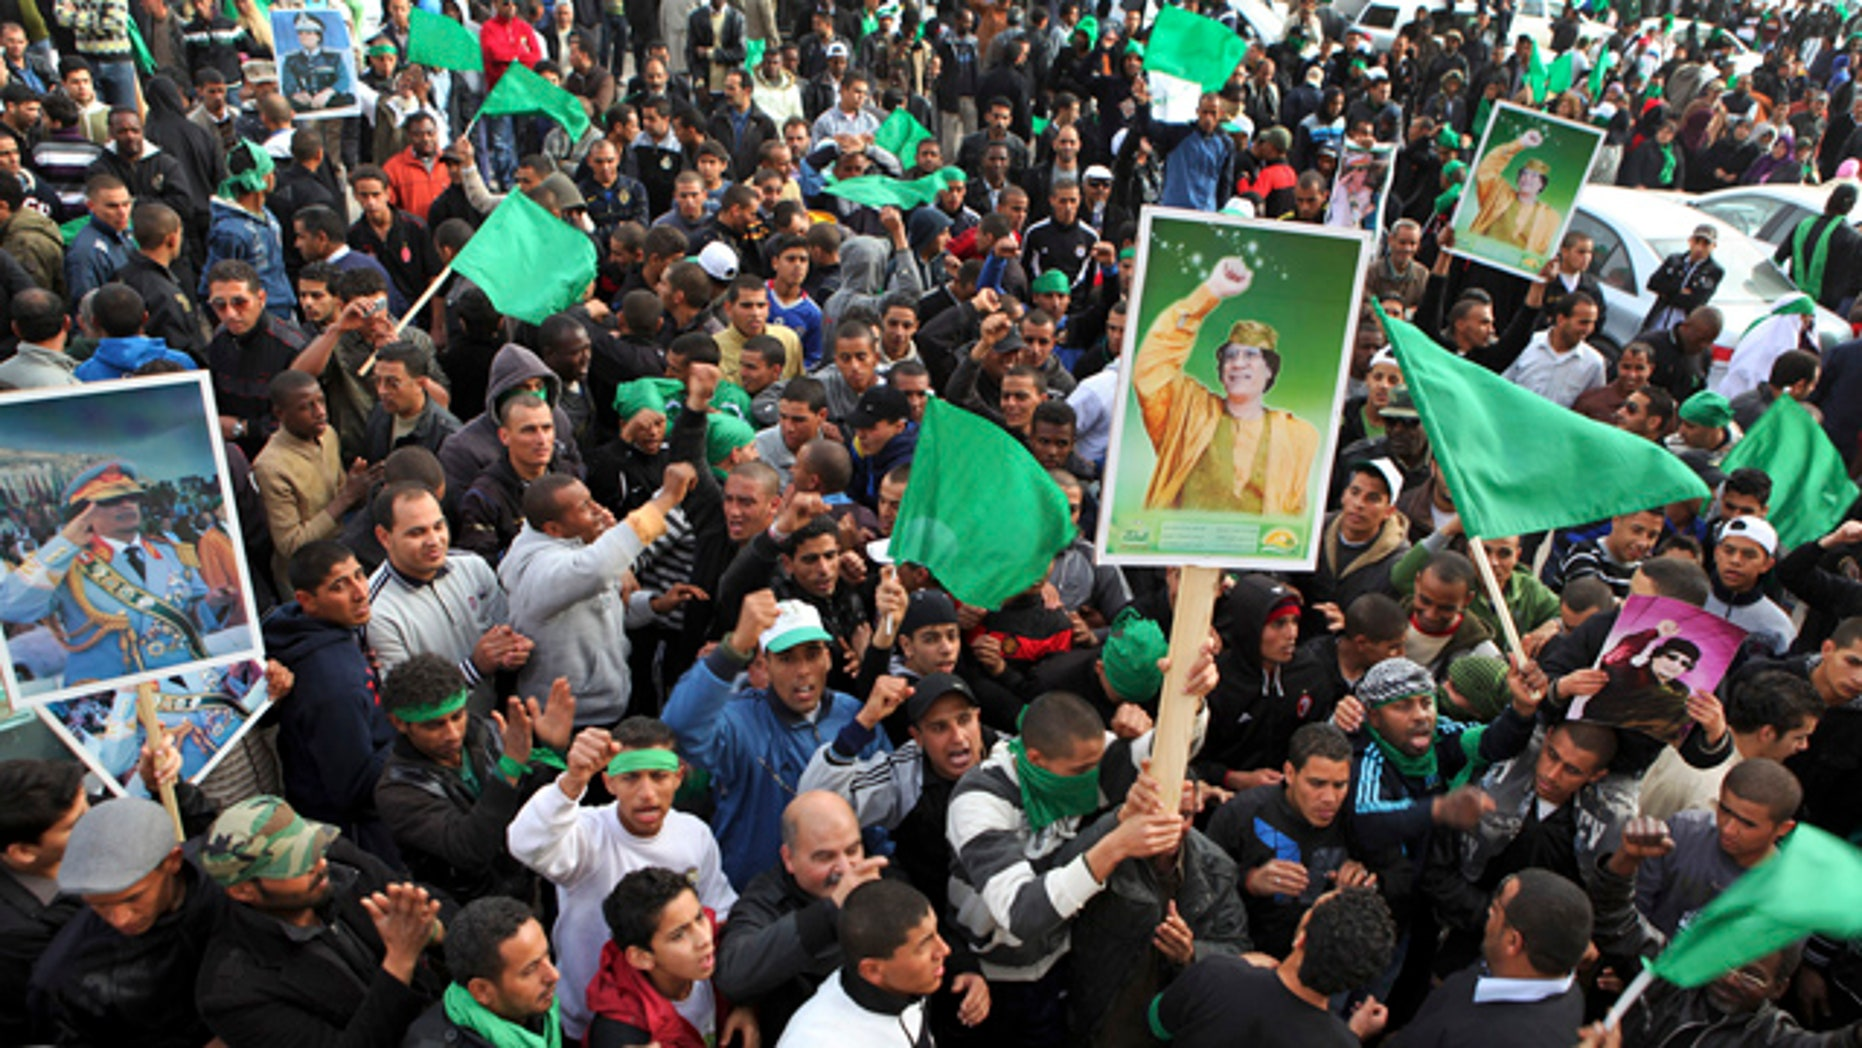 Feb. 18: Pro-Gadhafi supporters gather in Green Square after traditional Friday prayers in Tripoli, Libya.